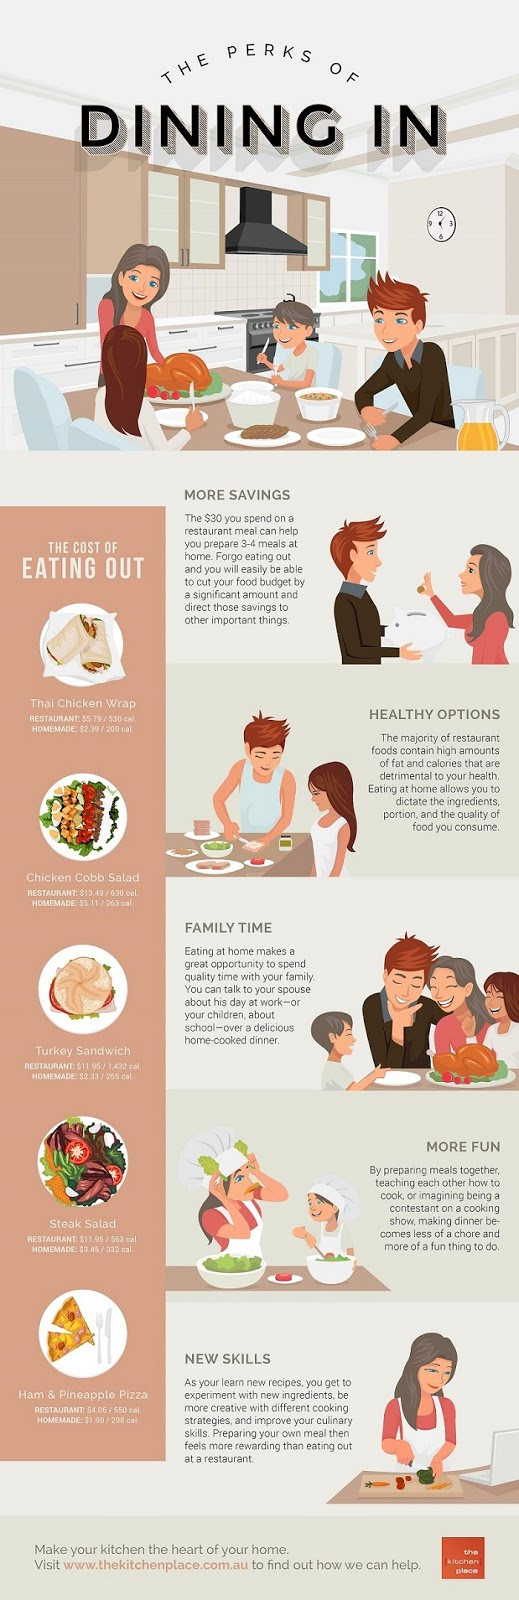 benefits-of-dining-In